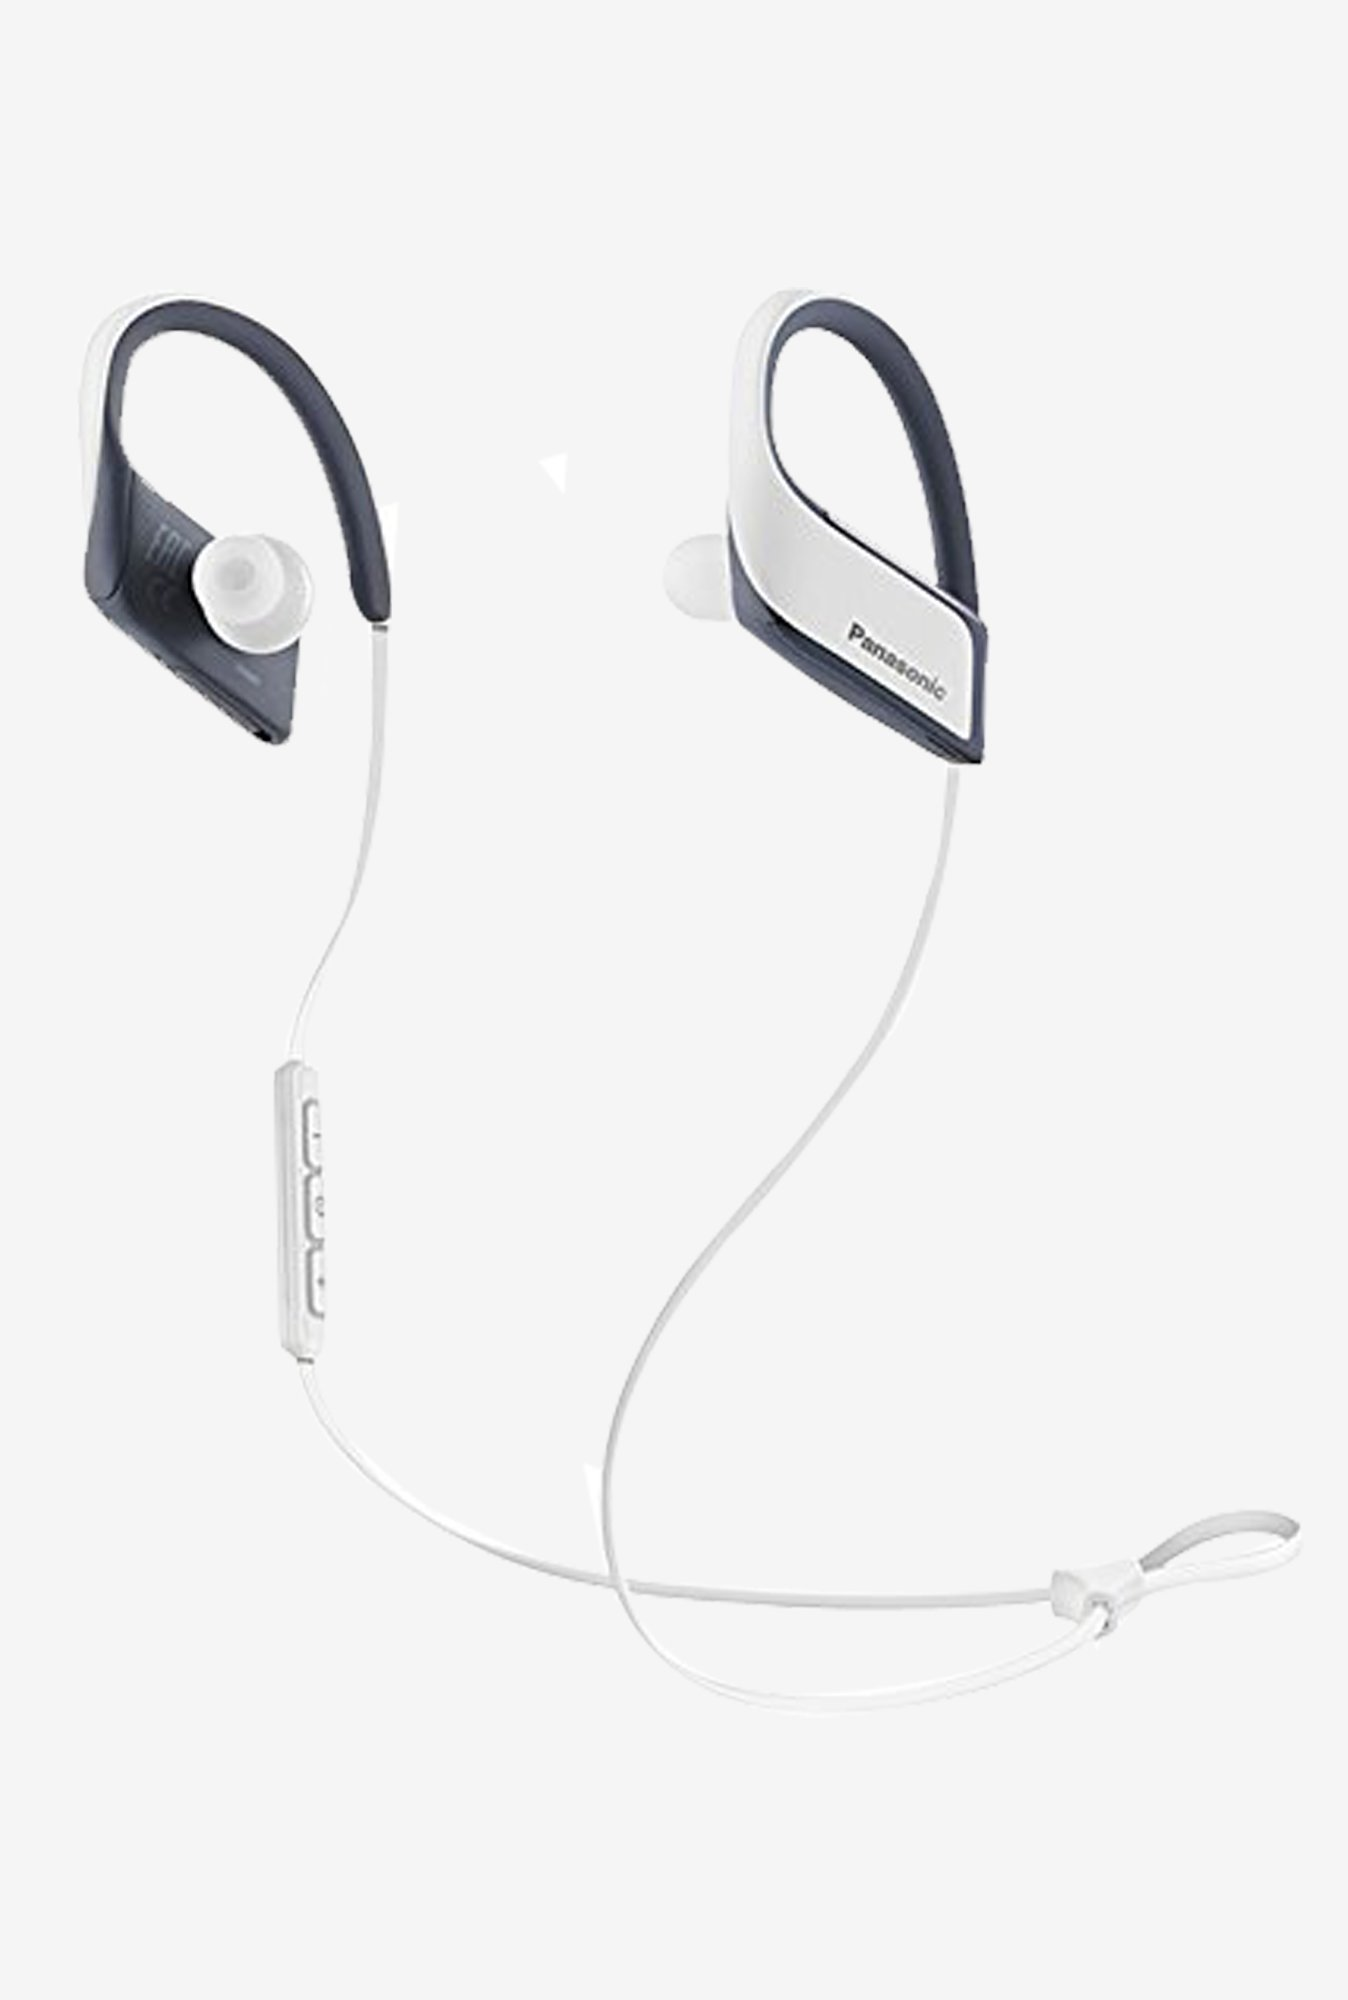 Panasonic RP-BTS30-W Sport Clip Headphone (White)